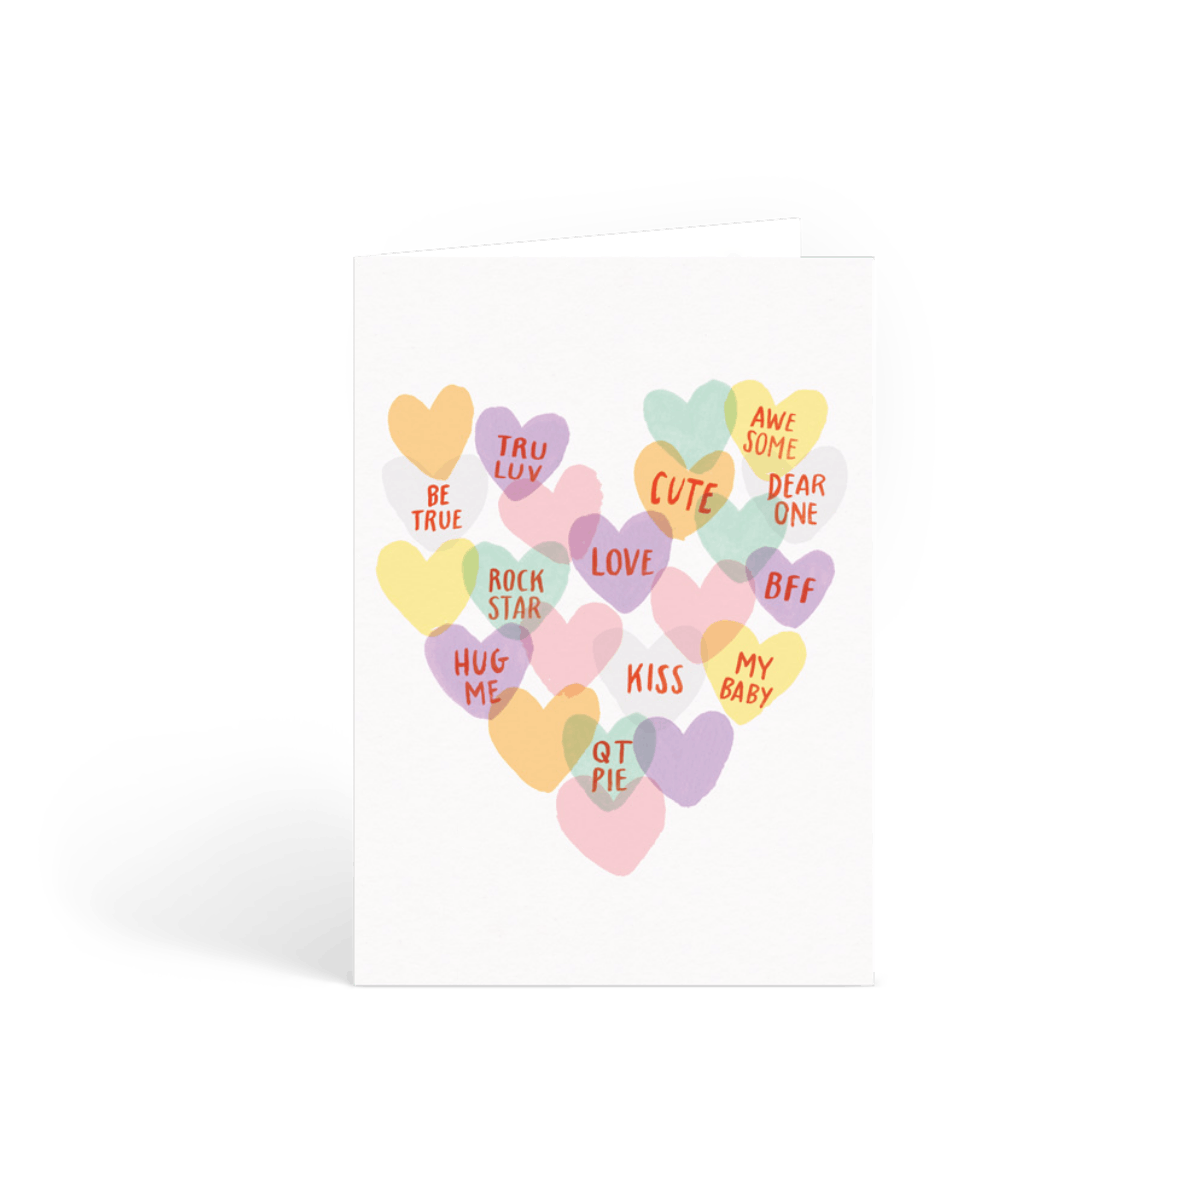 Https%3a%2f%2fwww.papier.com%2fproduct image%2f16438%2f2%2flove hearts 4342 front 1542798273.png?ixlib=rb 1.1